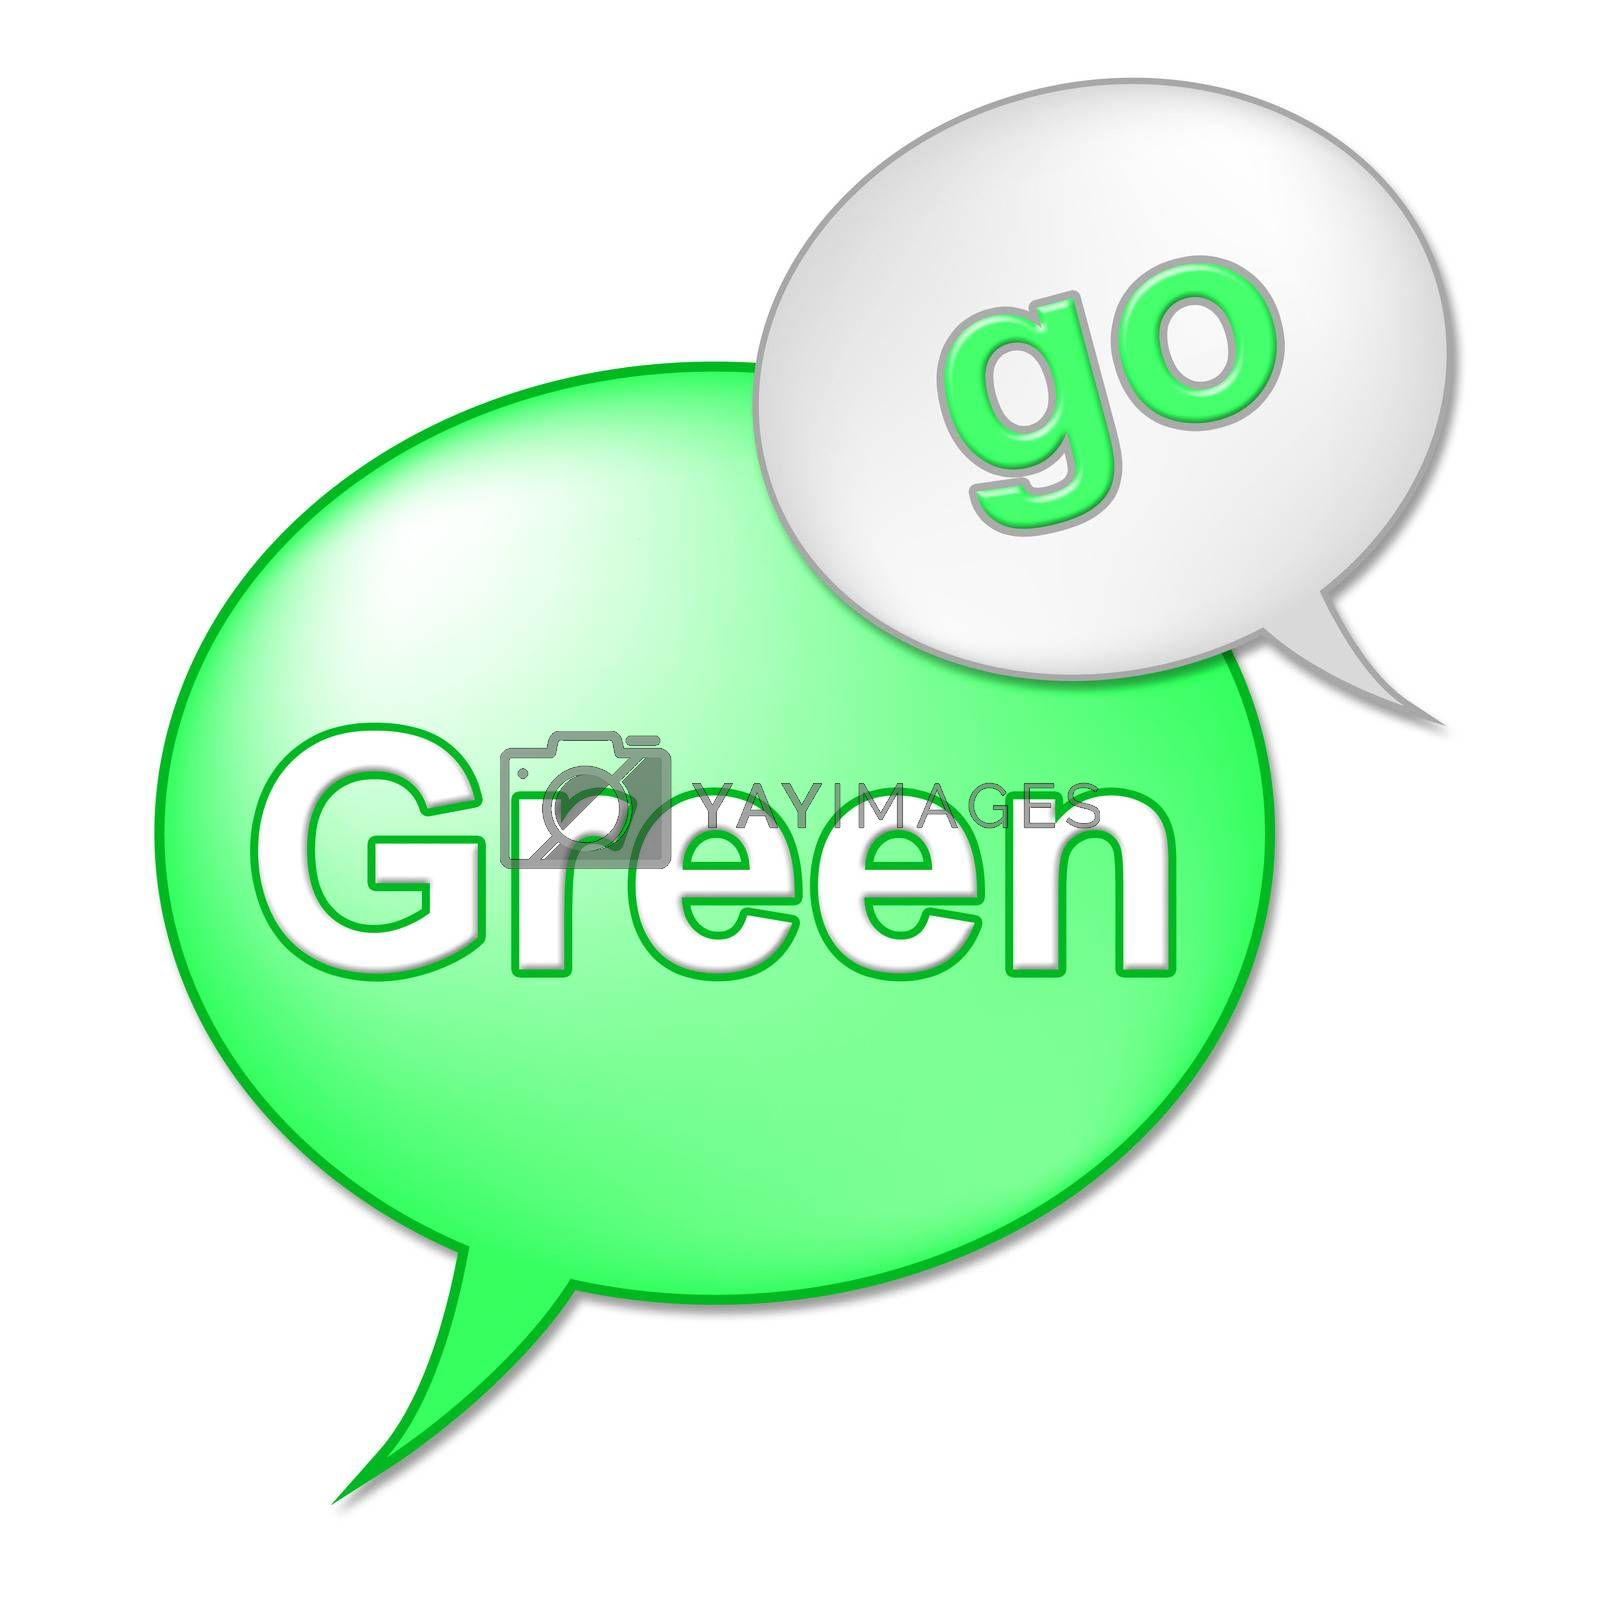 Go Green Message Indicates Eco Friendly And Conservation by stuartmiles